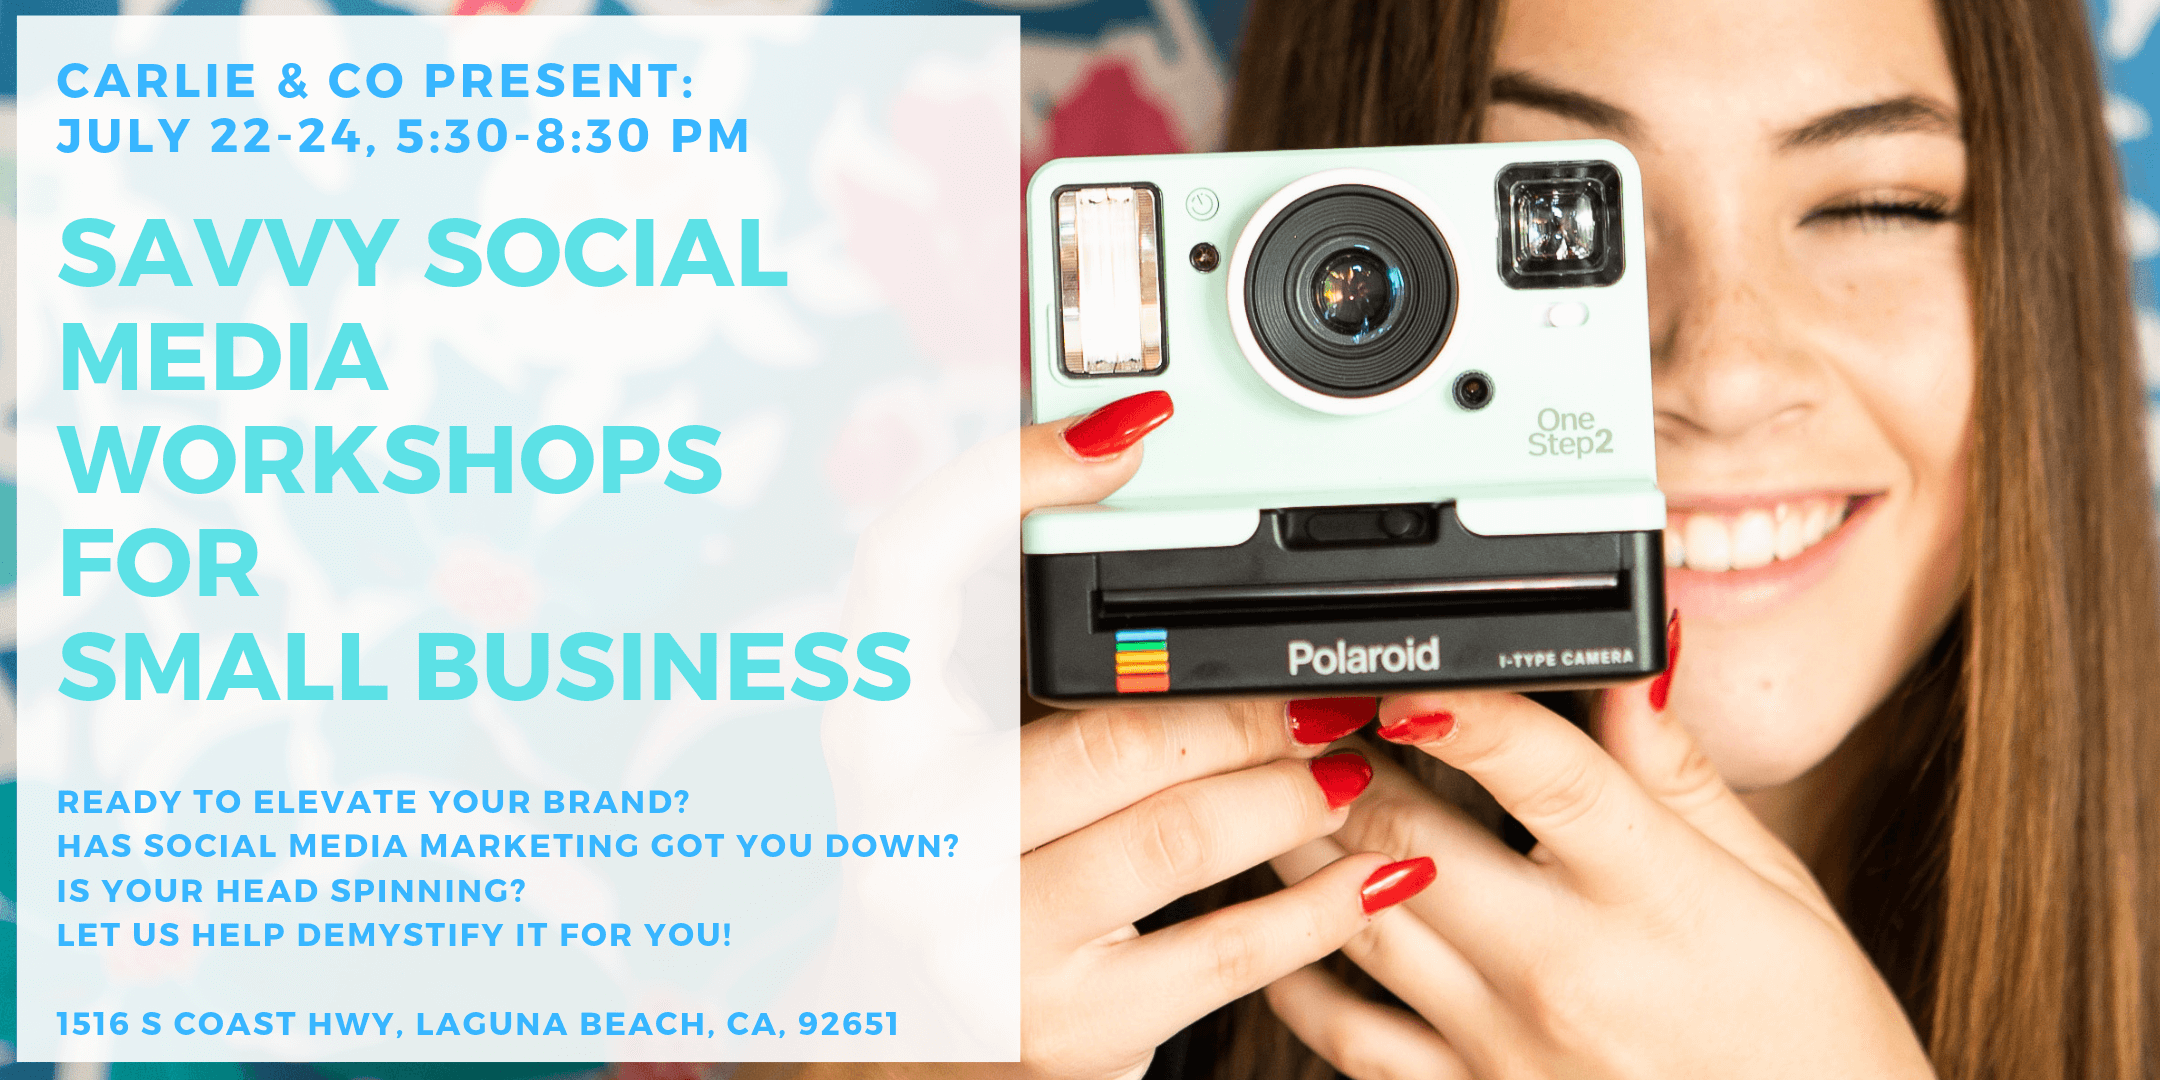 Savvy Social Media Workshop - Join an action-packed night filled with strategic talks from leading social media experts. If you're a small business owner looking to elevate your brand with a hands-on and practical approach, this event was made for you.Be sure to book your ticket as spots are filling up quickly! We're so excited to meet you.